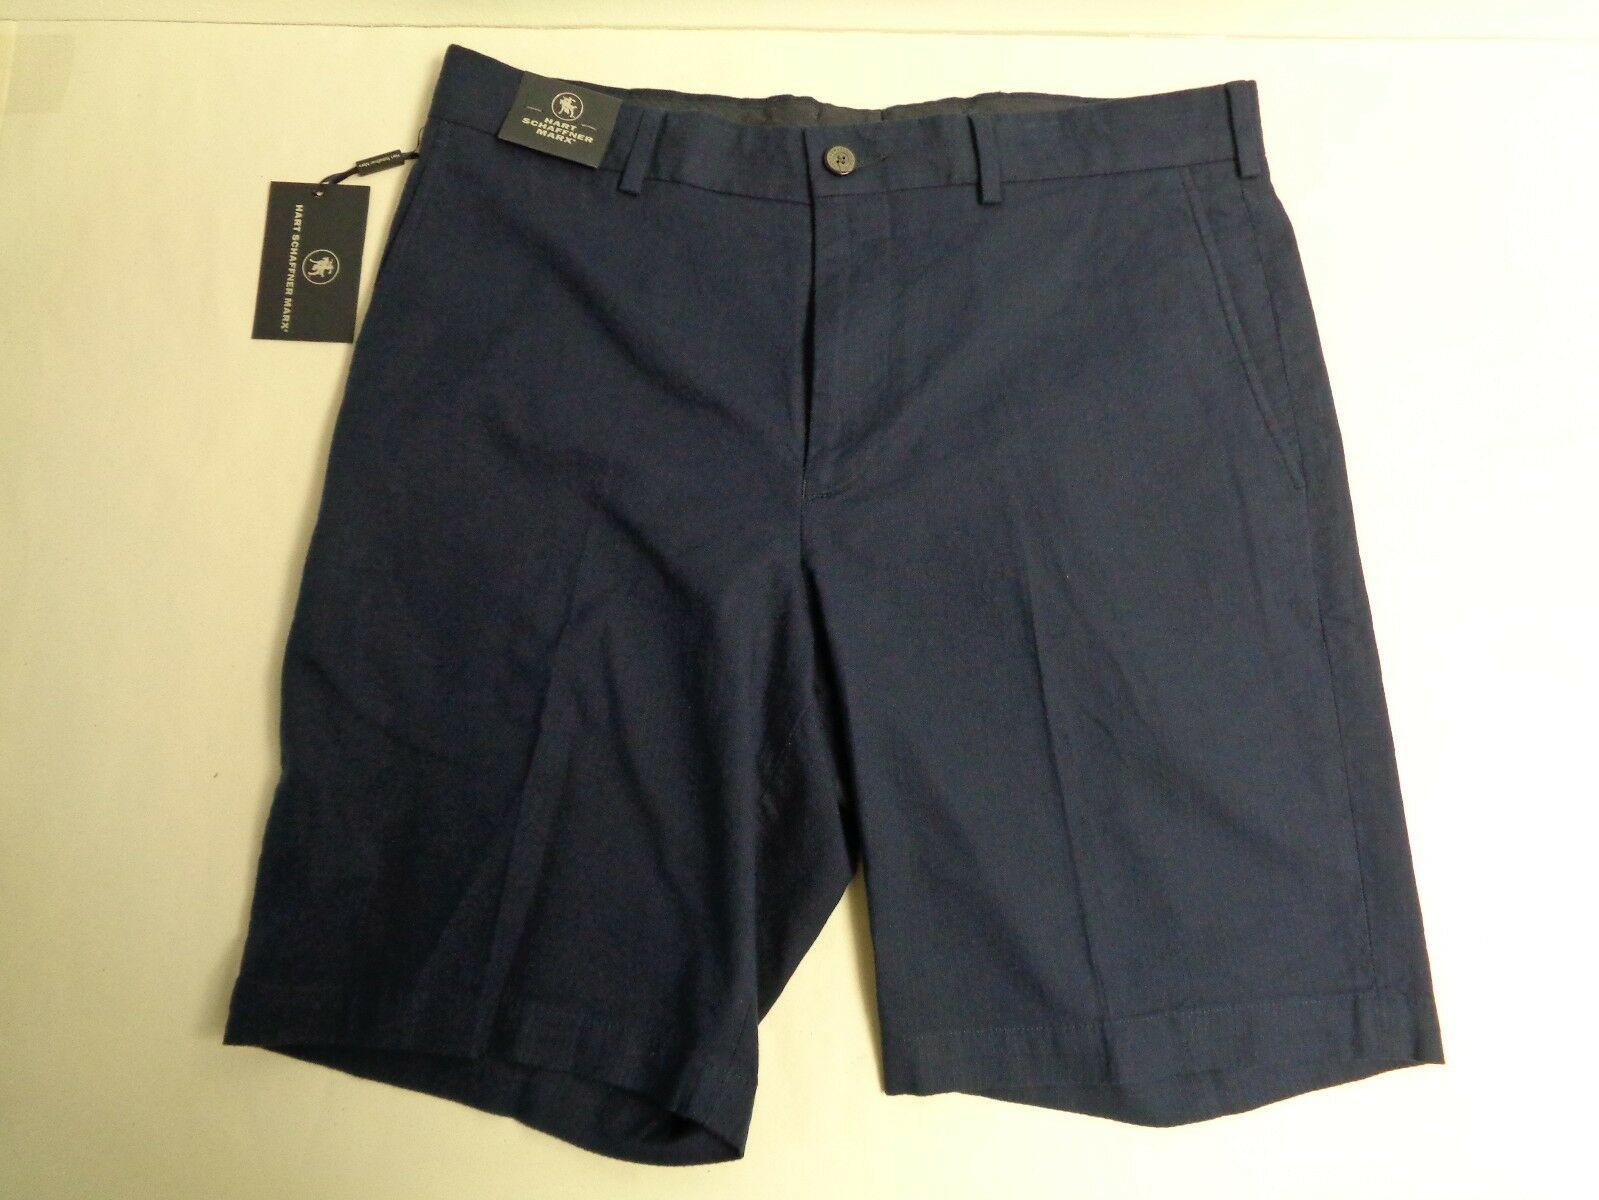 Hart Schaffner Marx Size 34 FLAT FRONT bluee Navy Cotton Shorts New Mens Clothing